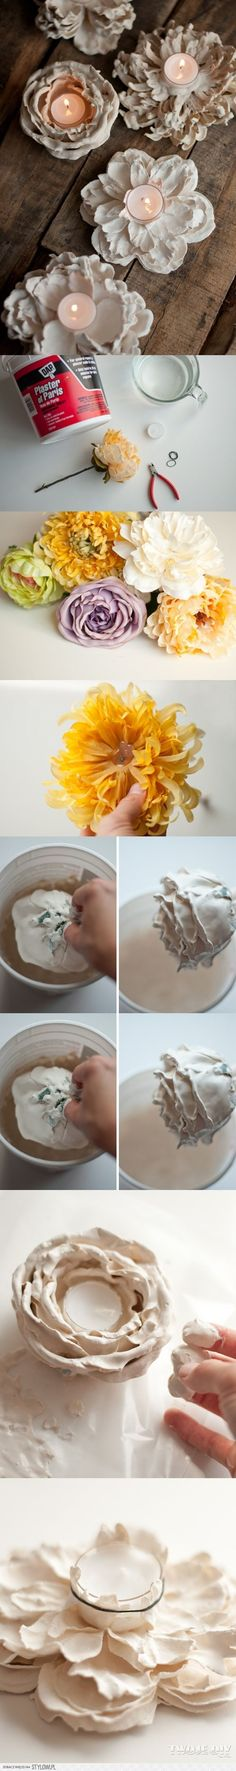 DIY Romantic Plaster Dipped Flower Votives. I can't believe how easy it is to make these beautiful flower votives at home. Tutorial via #beautifulflowersromantic